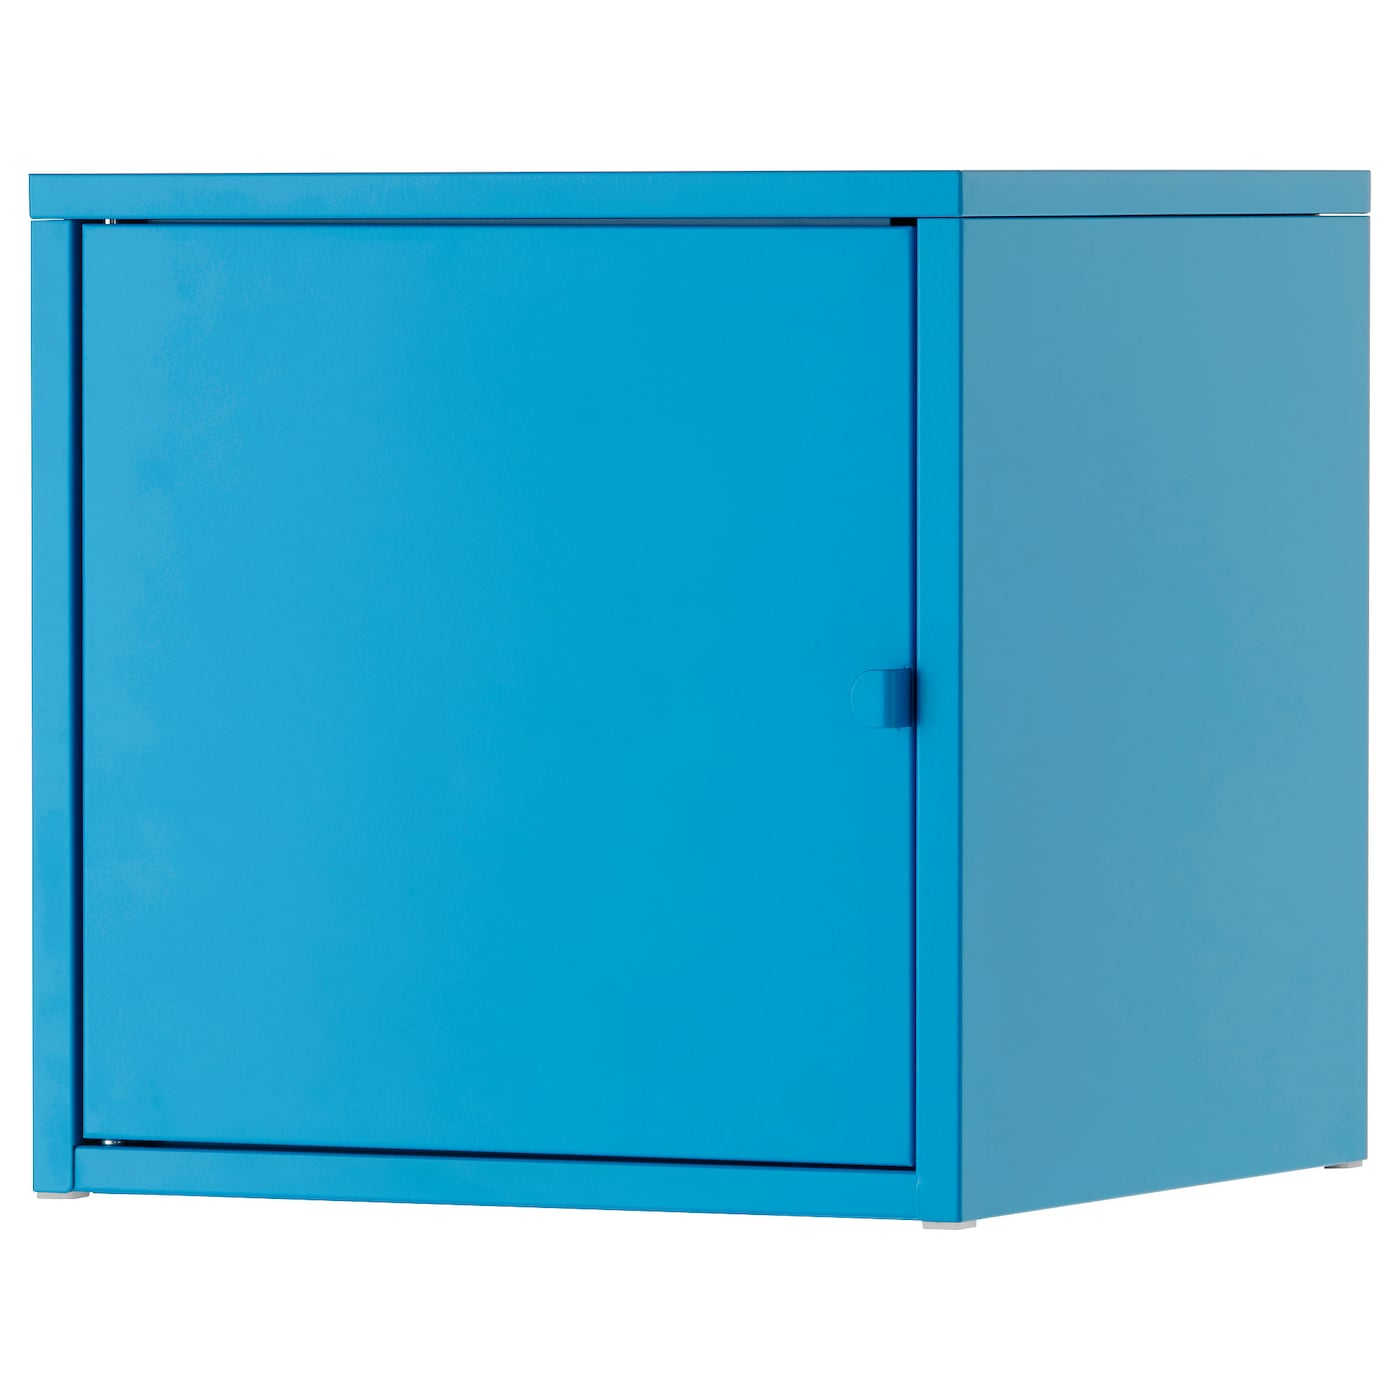 Lixhult cabinet metal blue 35x35 cm ikea for Metal lockers ikea